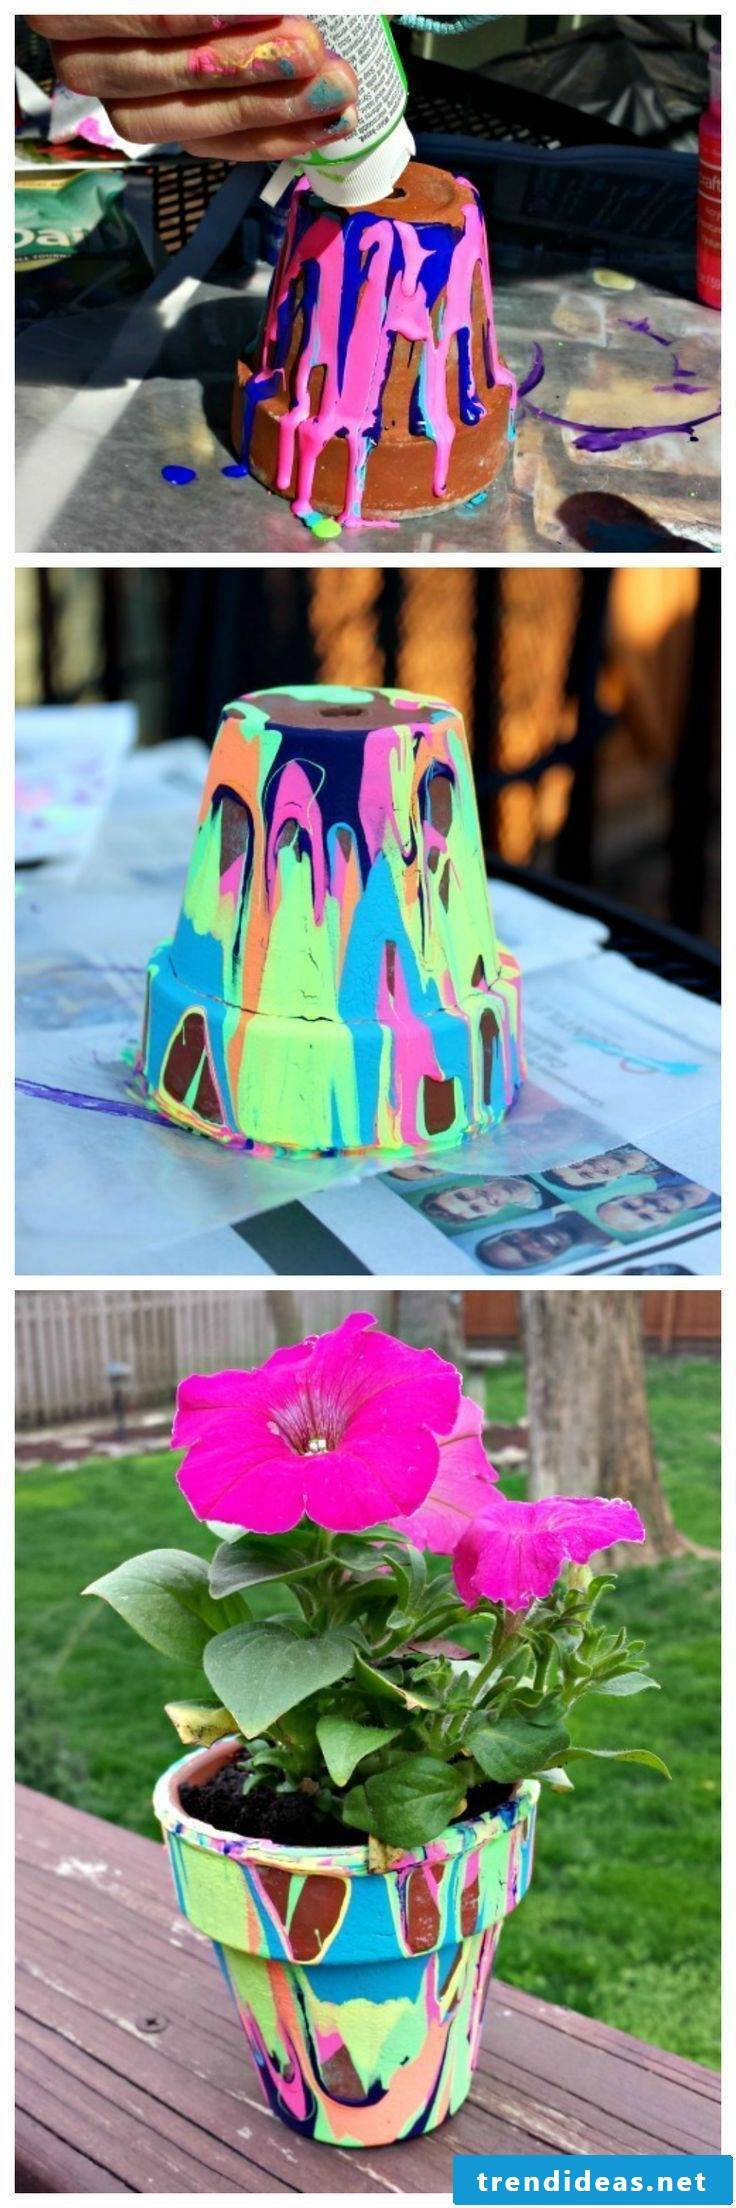 Make Mother's Day gifts: make a flower pot yourself